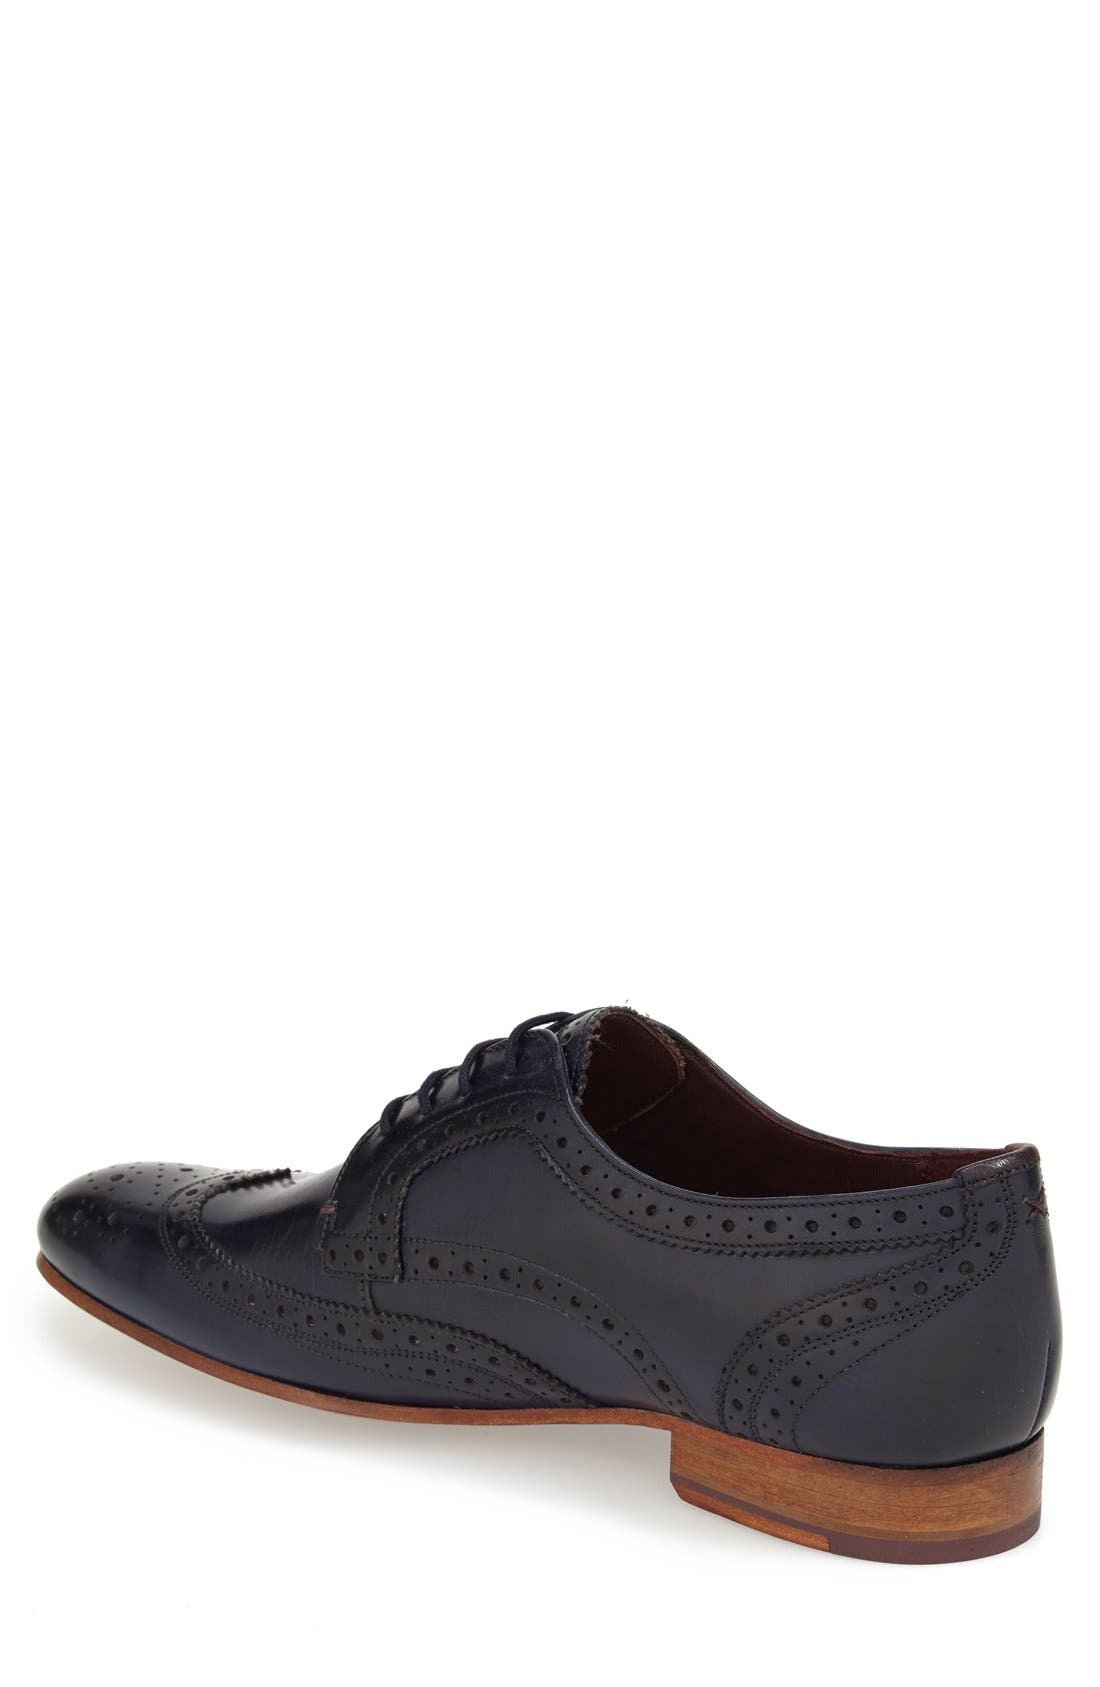 'Gryene' Wingtip Oxford,                             Alternate thumbnail 8, color,